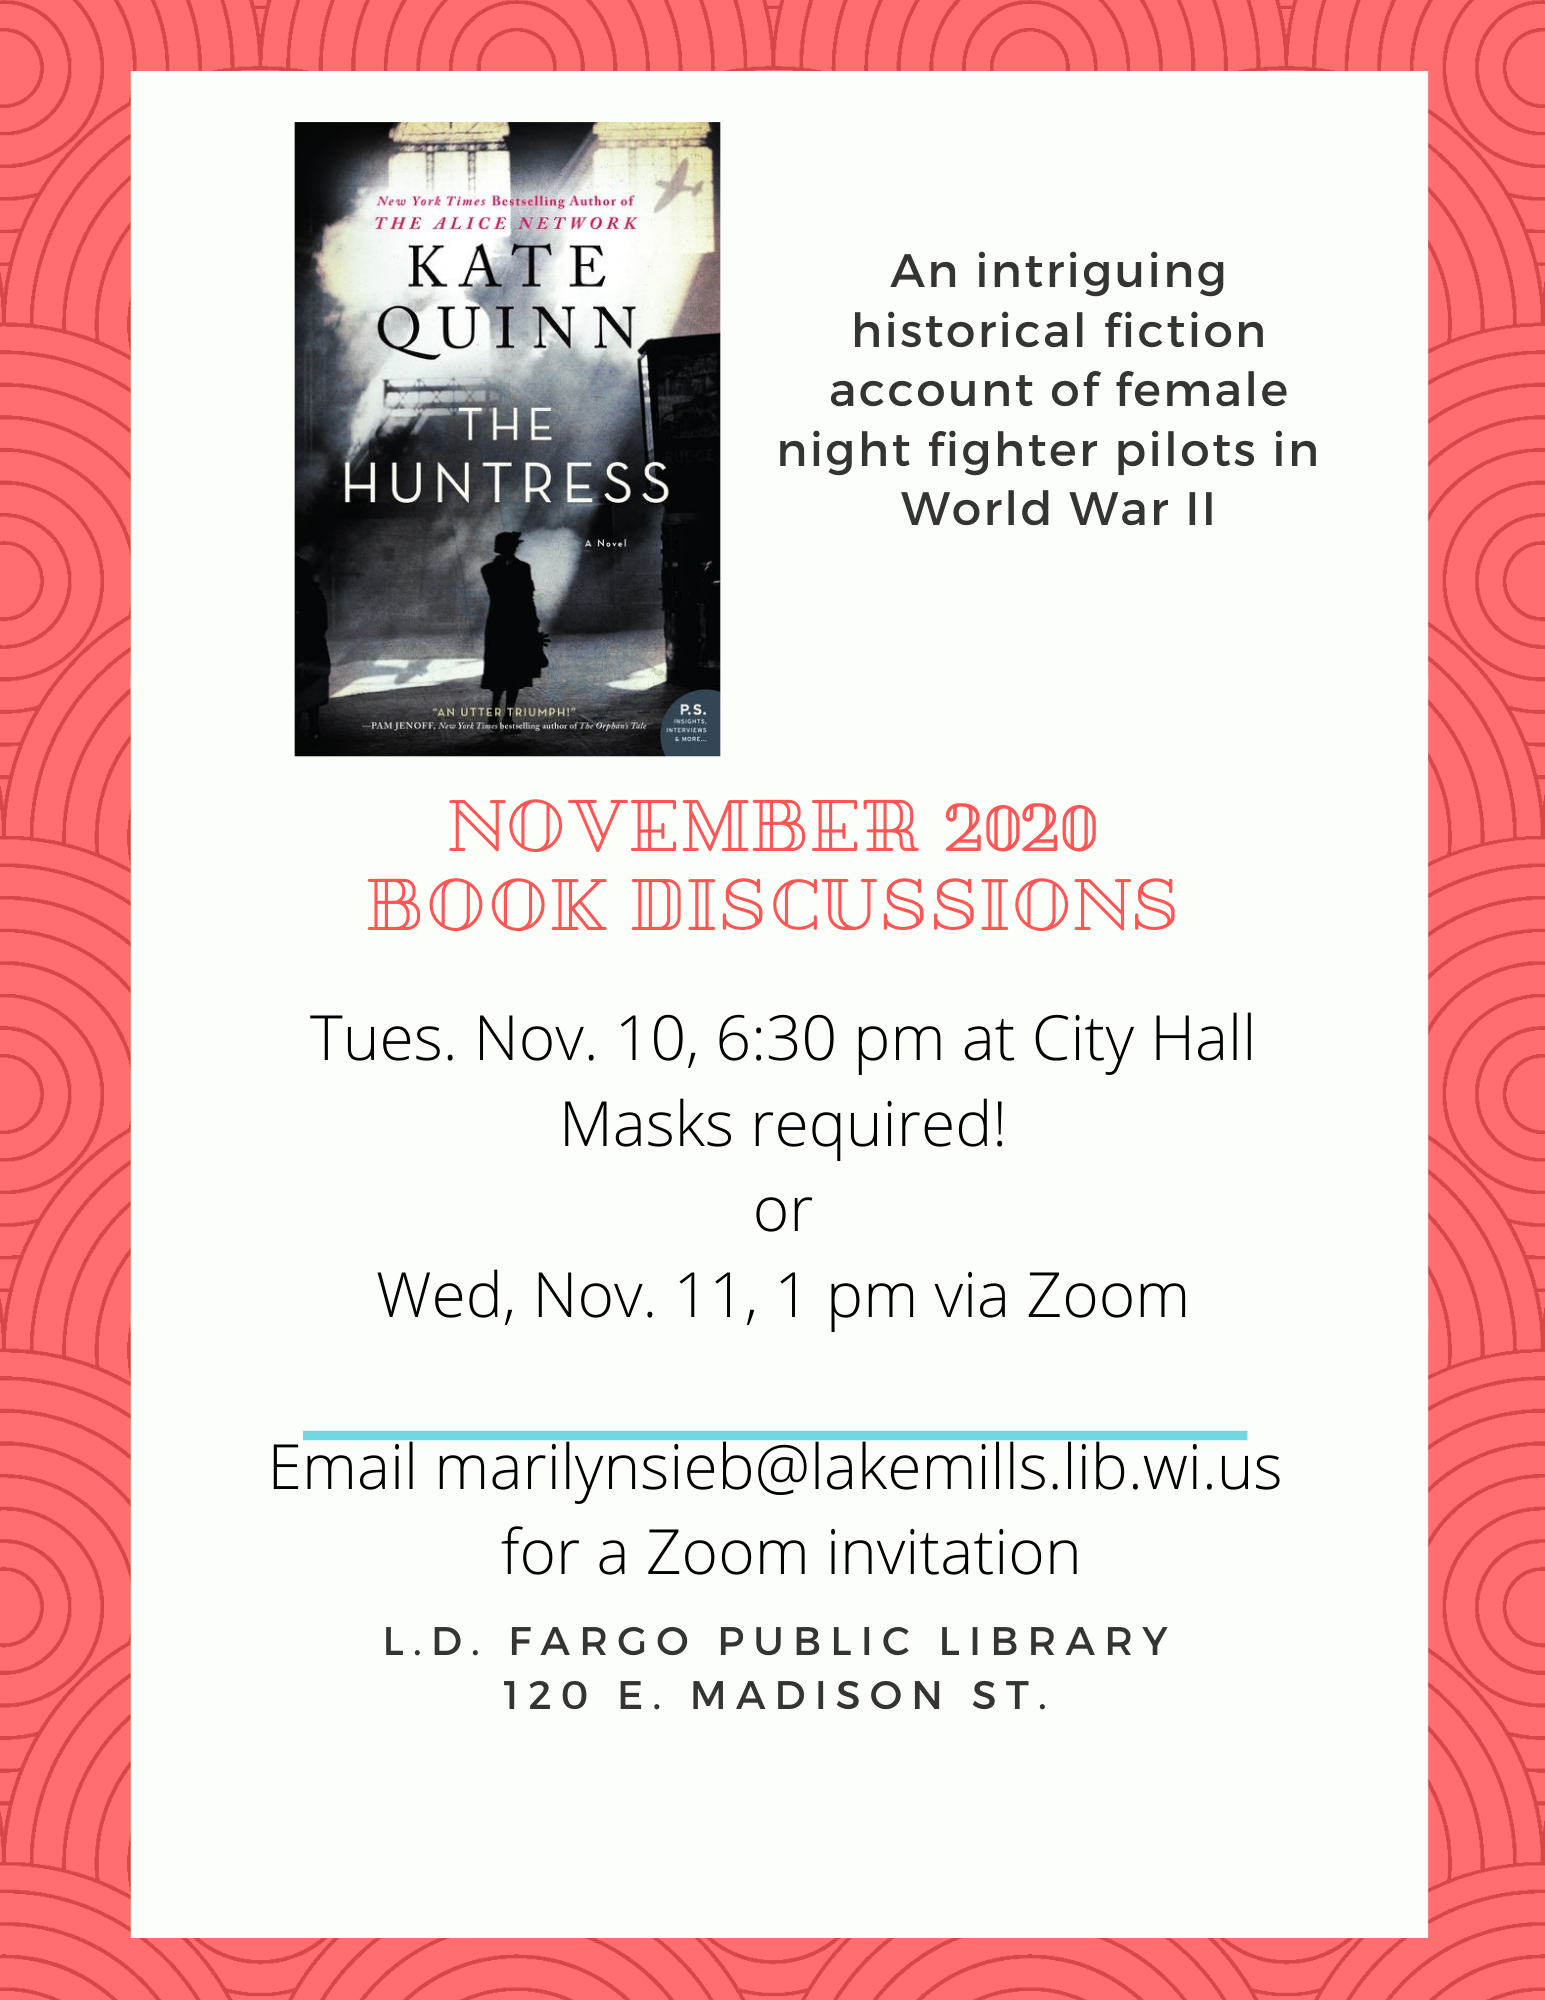 November 2020 Book Discussions: The Huntress by Kate Quinn Tues. Nov. 10, 6:30 pm at City Hall Masks required! or Wed, Nov. 11, 1 pm via Zoom